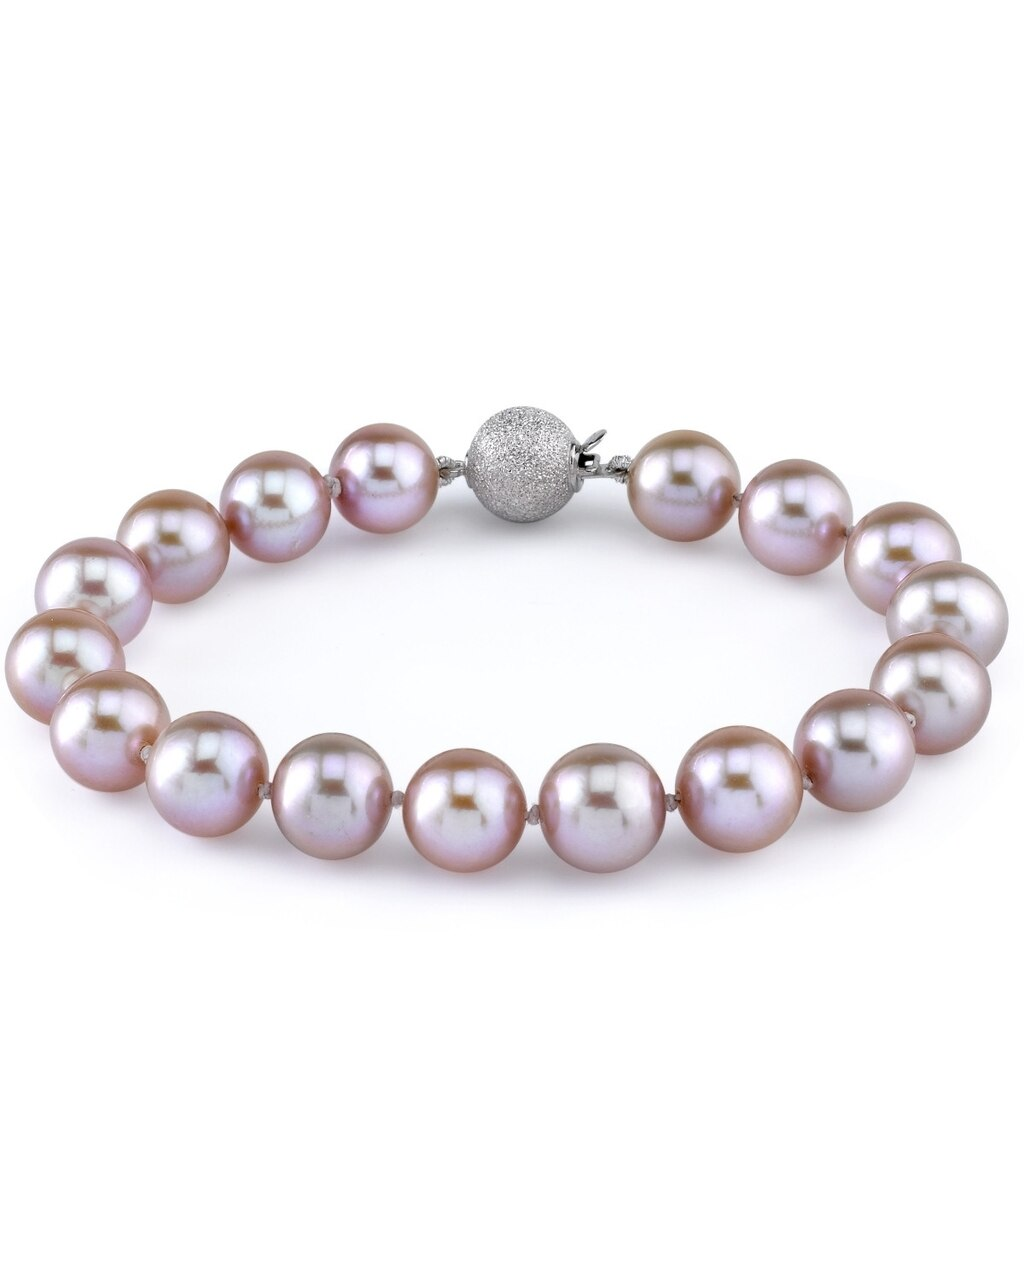 This gorgeous bracelet features 9.0-10.0mm pink Freshwater pearls, handpicked for their luminous luster